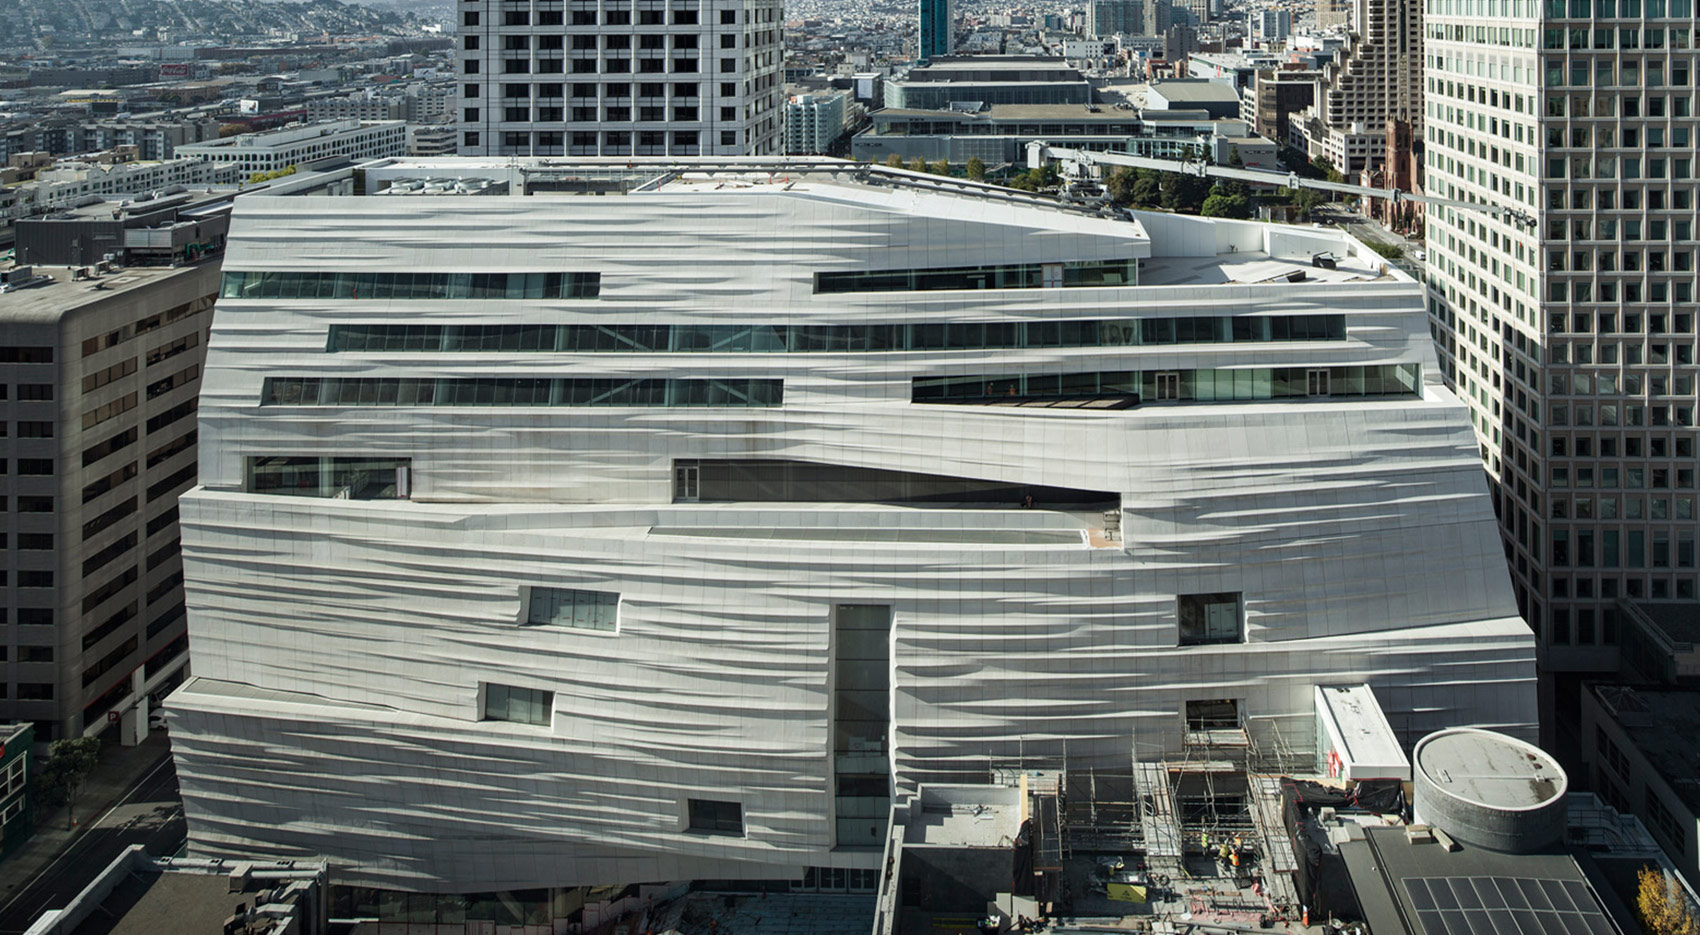 view of the skyline of SFMOMA